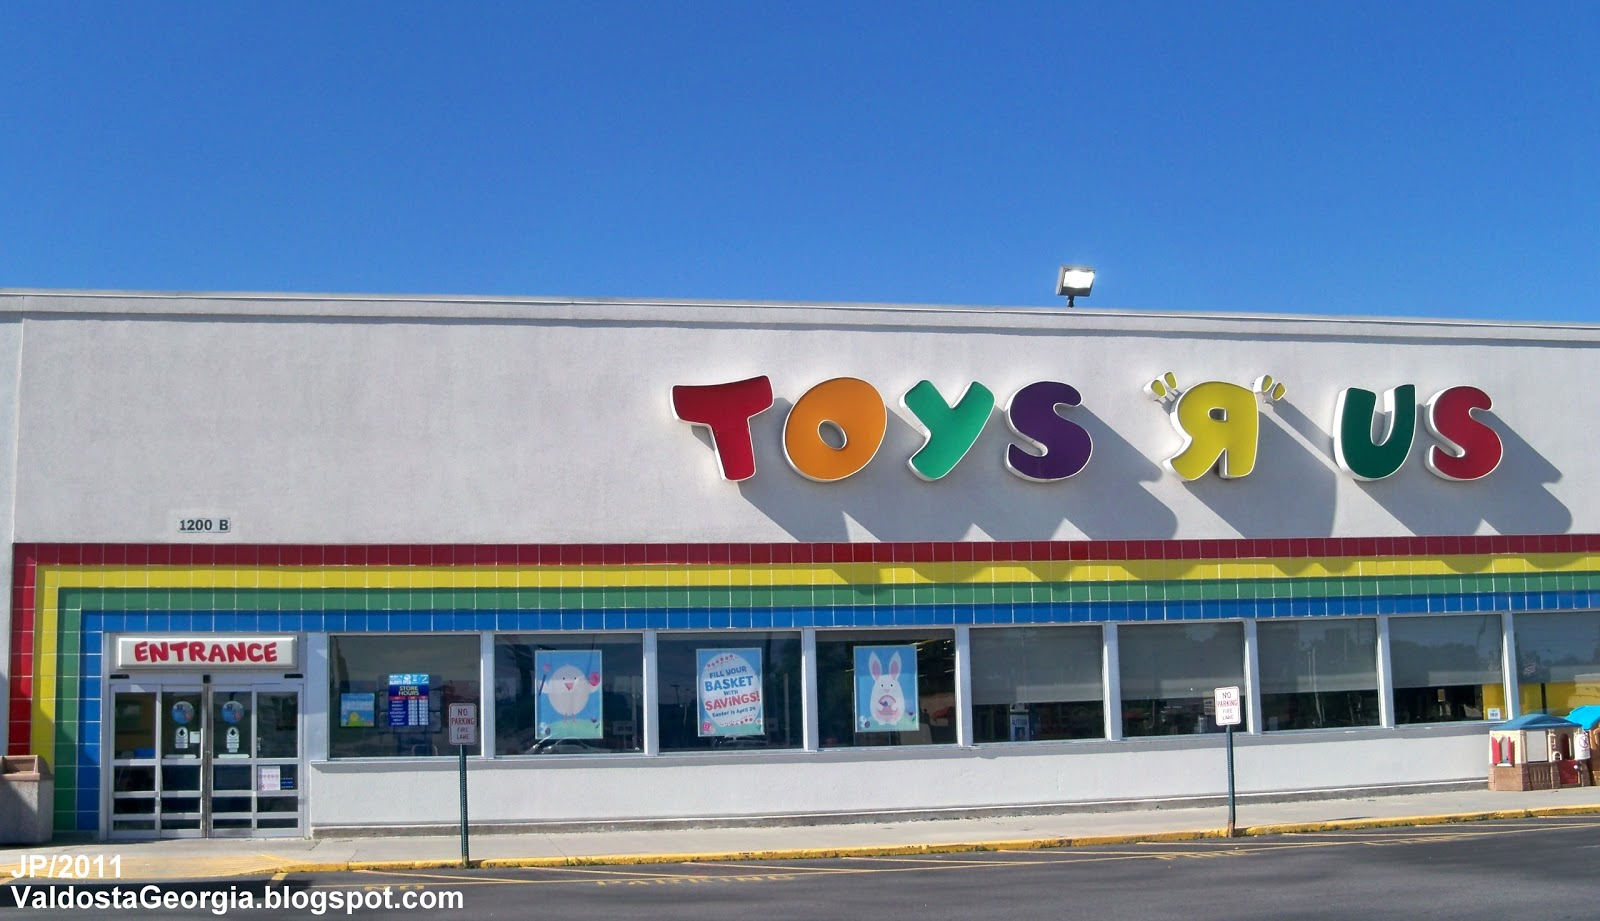 Mar 15,  · Watch video · The abrupt shuttering of Toys R Us' massive store fleet in the U.S. will leave a chunk of vacant real estate on the slubedcevo.ml: Lauren Thomas.